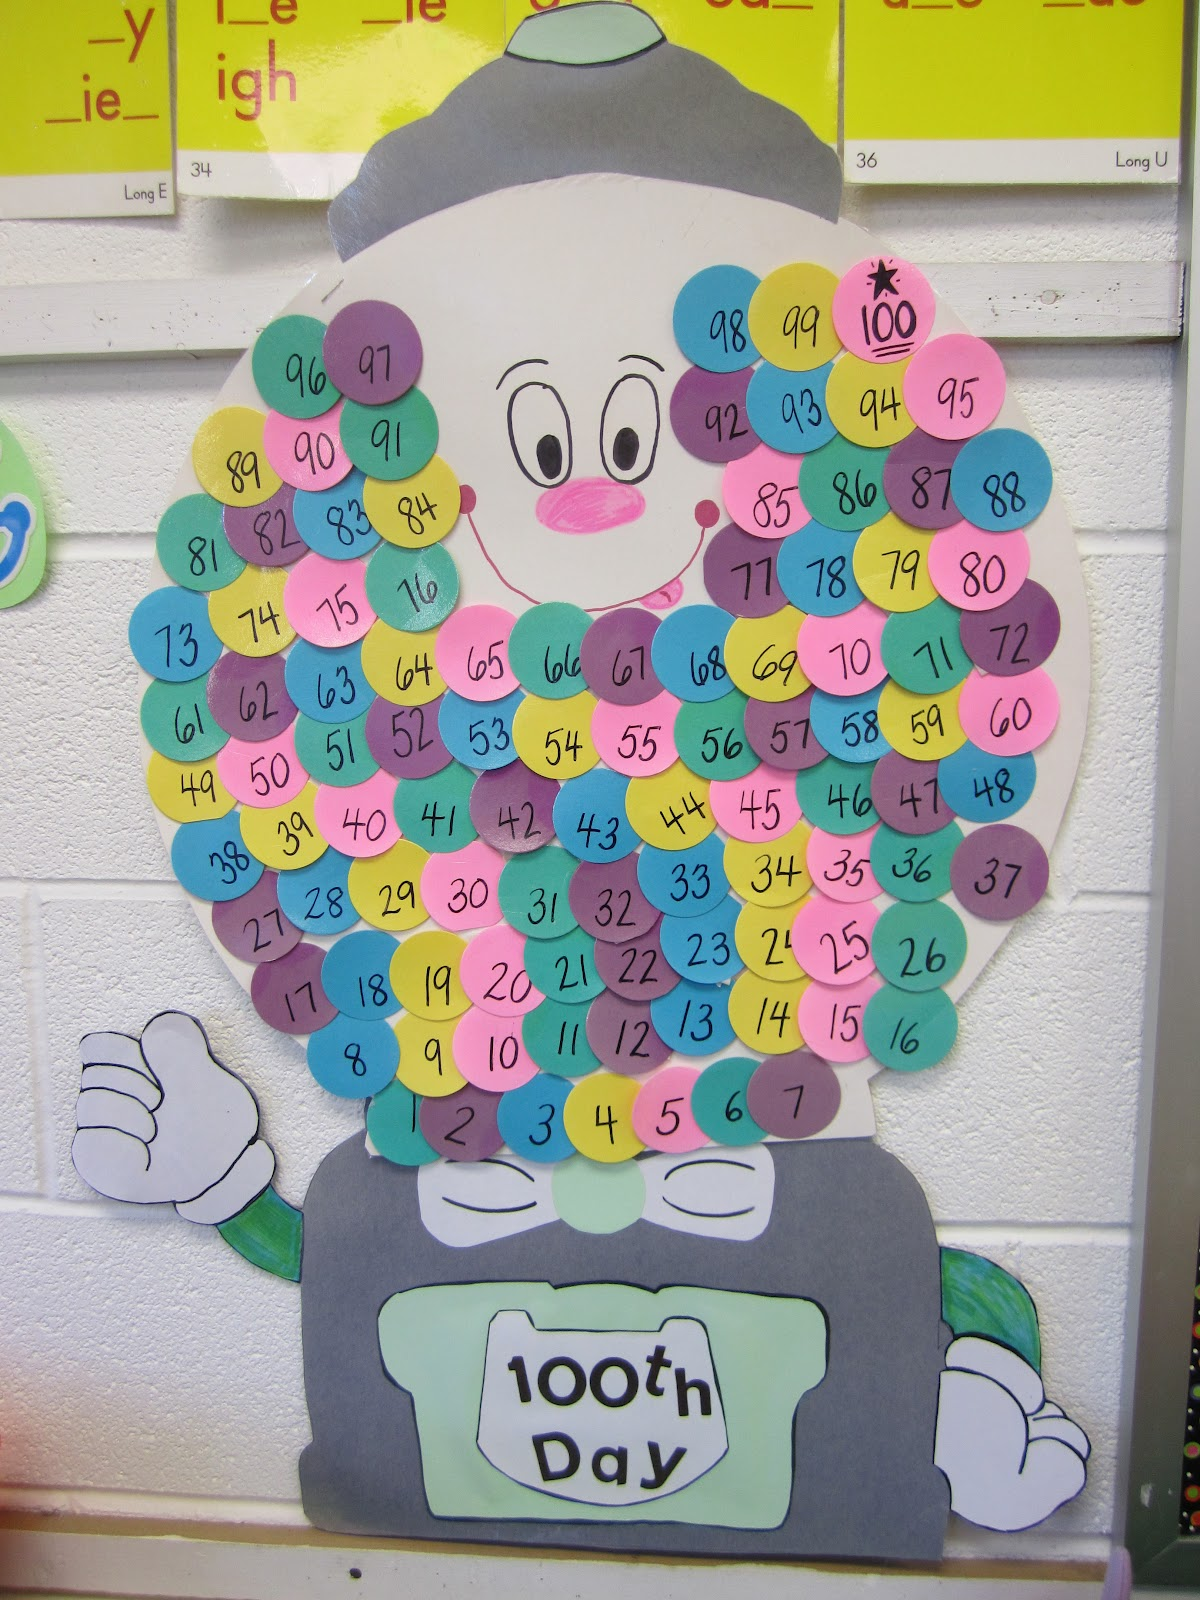 I Love That Idea 100th Day Gumball Machine